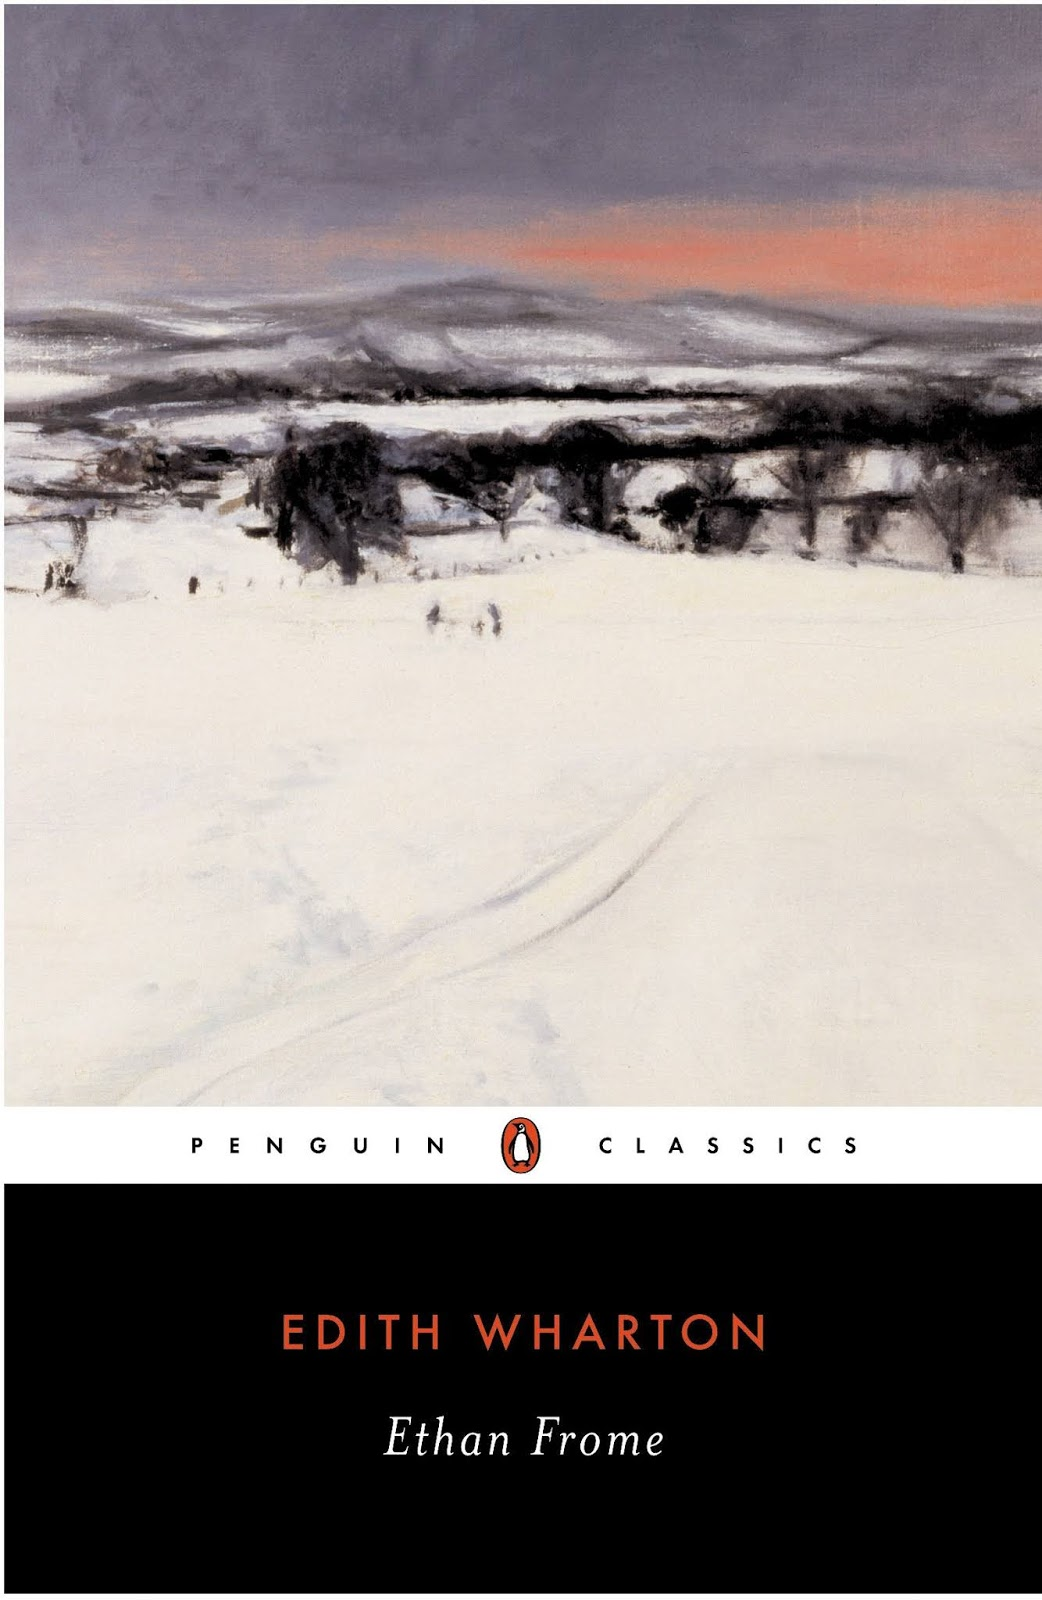 the theme of failure in the novel ethan frome by edith wharton About ethan frome set against the frozen waste of a harsh new england winter, edith wharton's ethan frome is a tale of despair, forbidden emotions, and sexual tensions, published with an introduction and notes by elizabeth ammons in penguin classics.